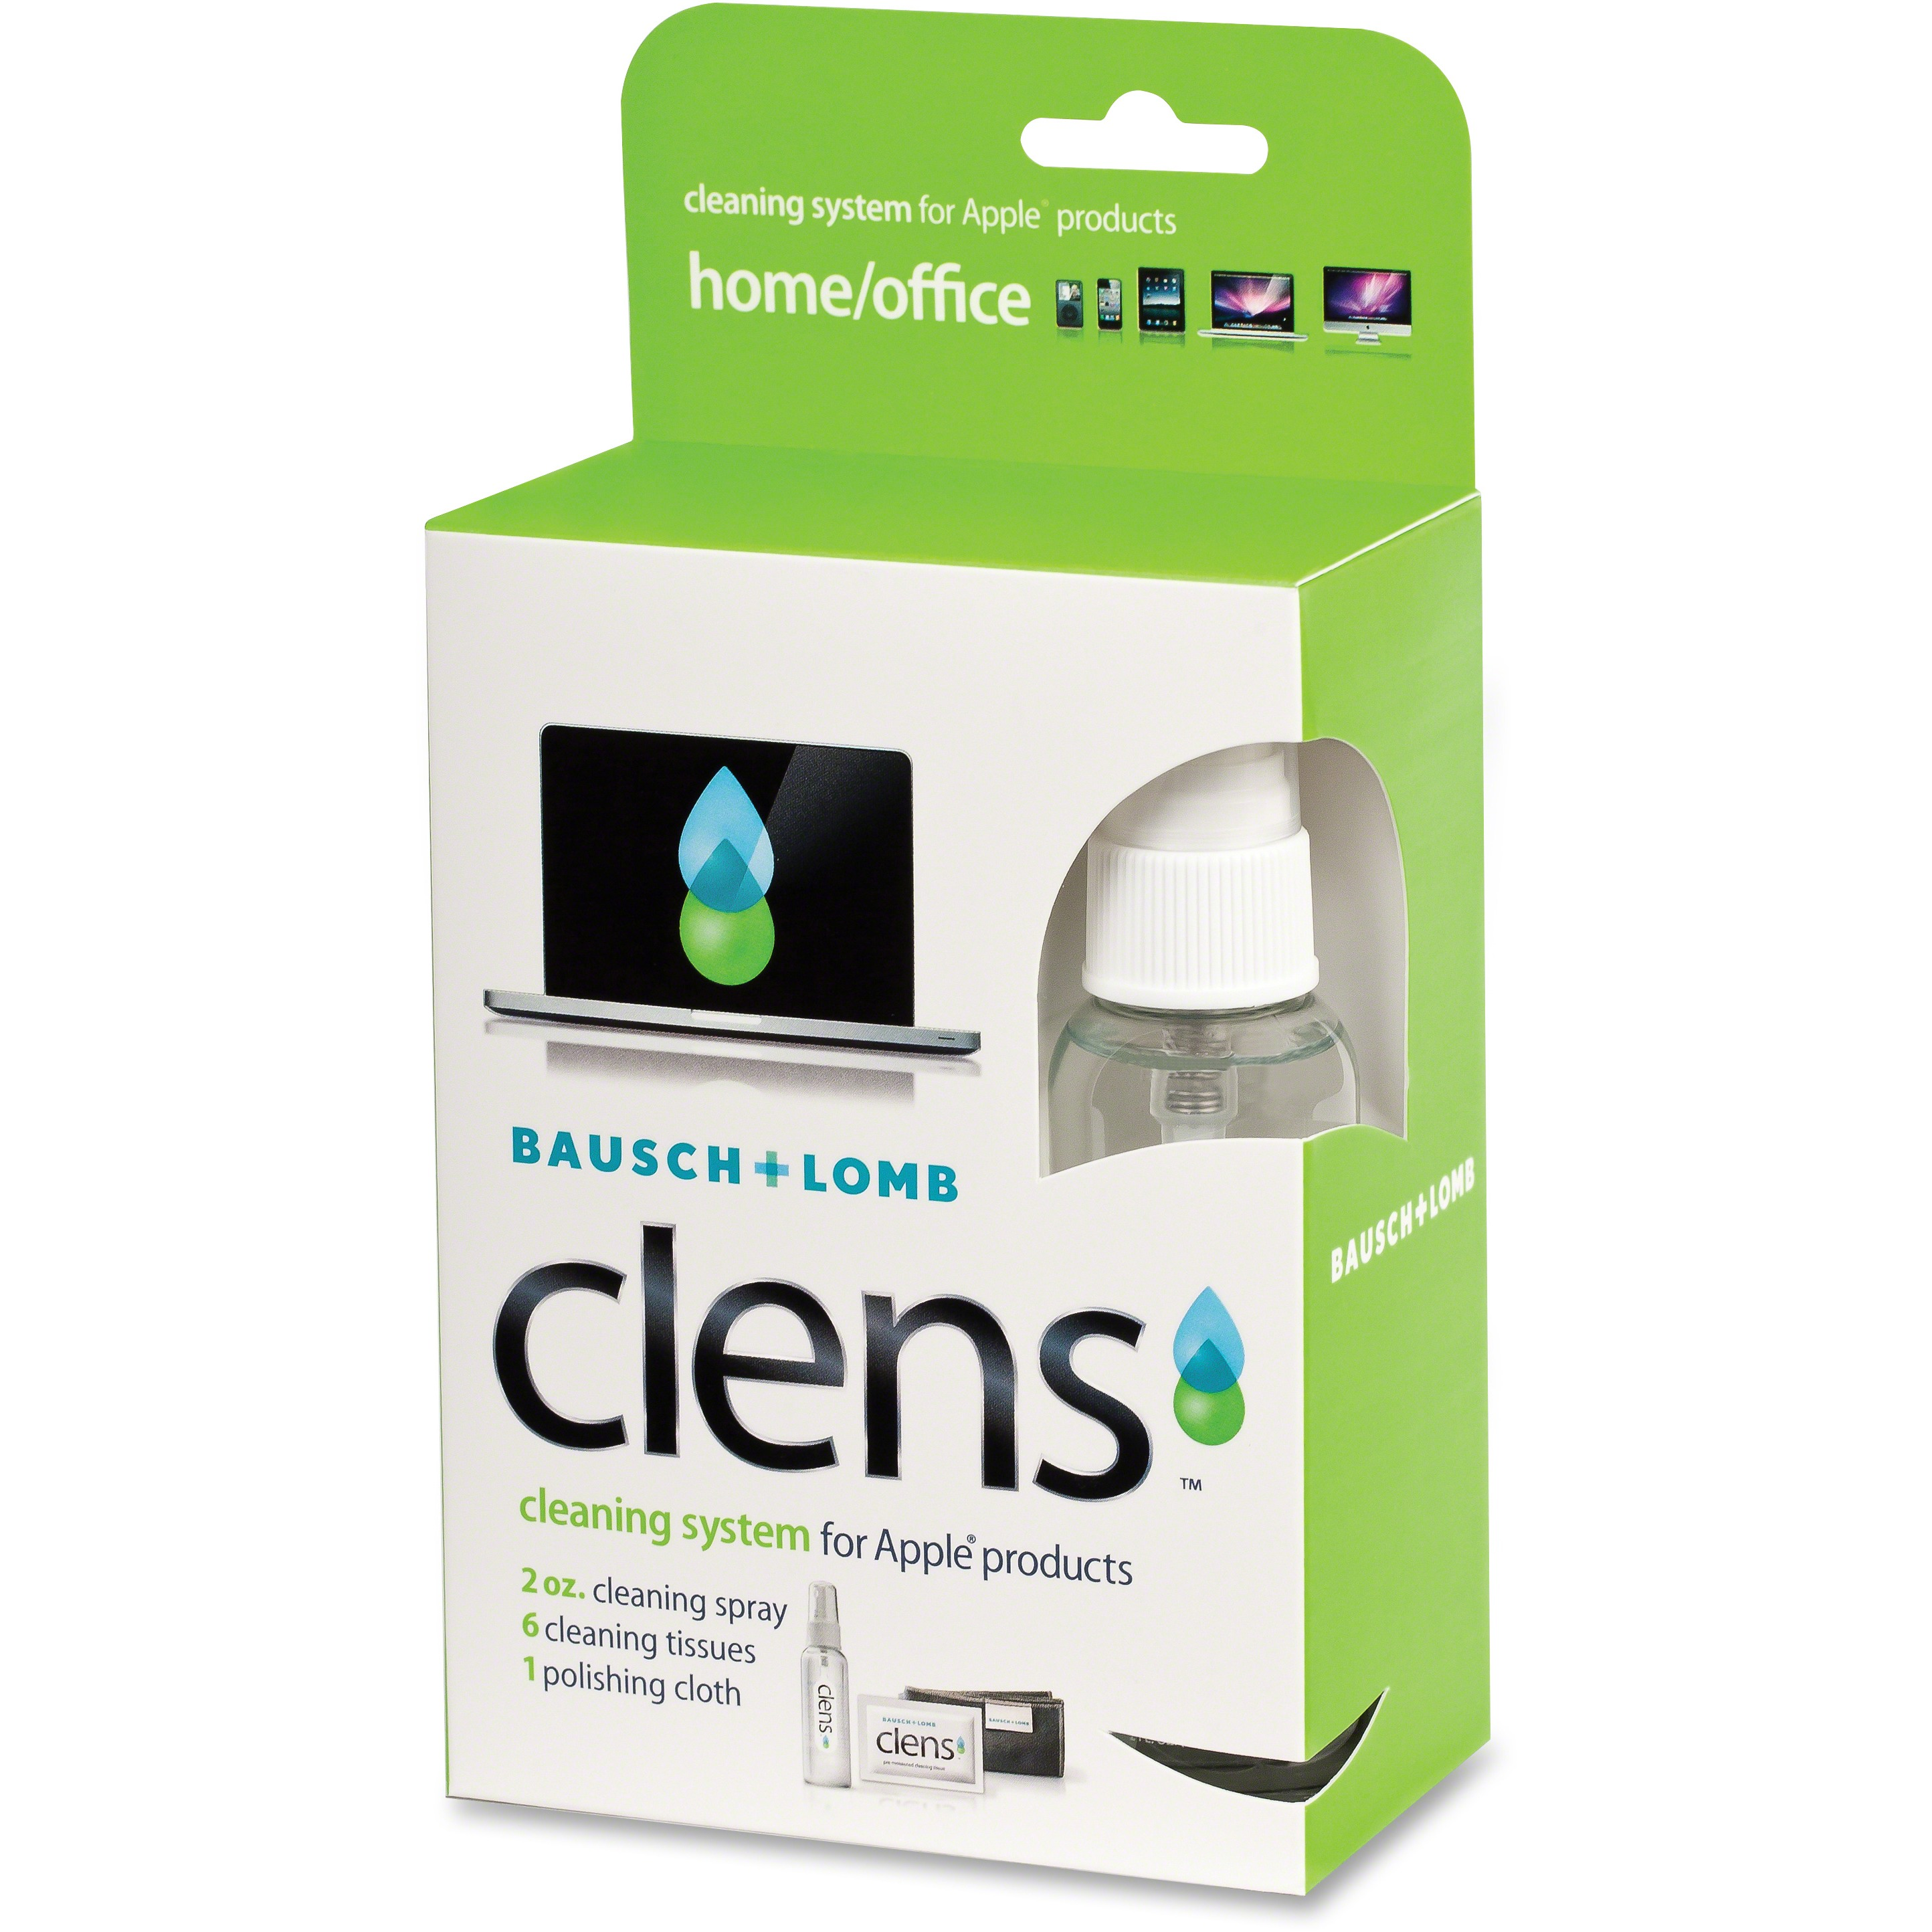 "Bausch & Lomb Clens Cleaning Product, 3 4/5"" x 2 1/4"""